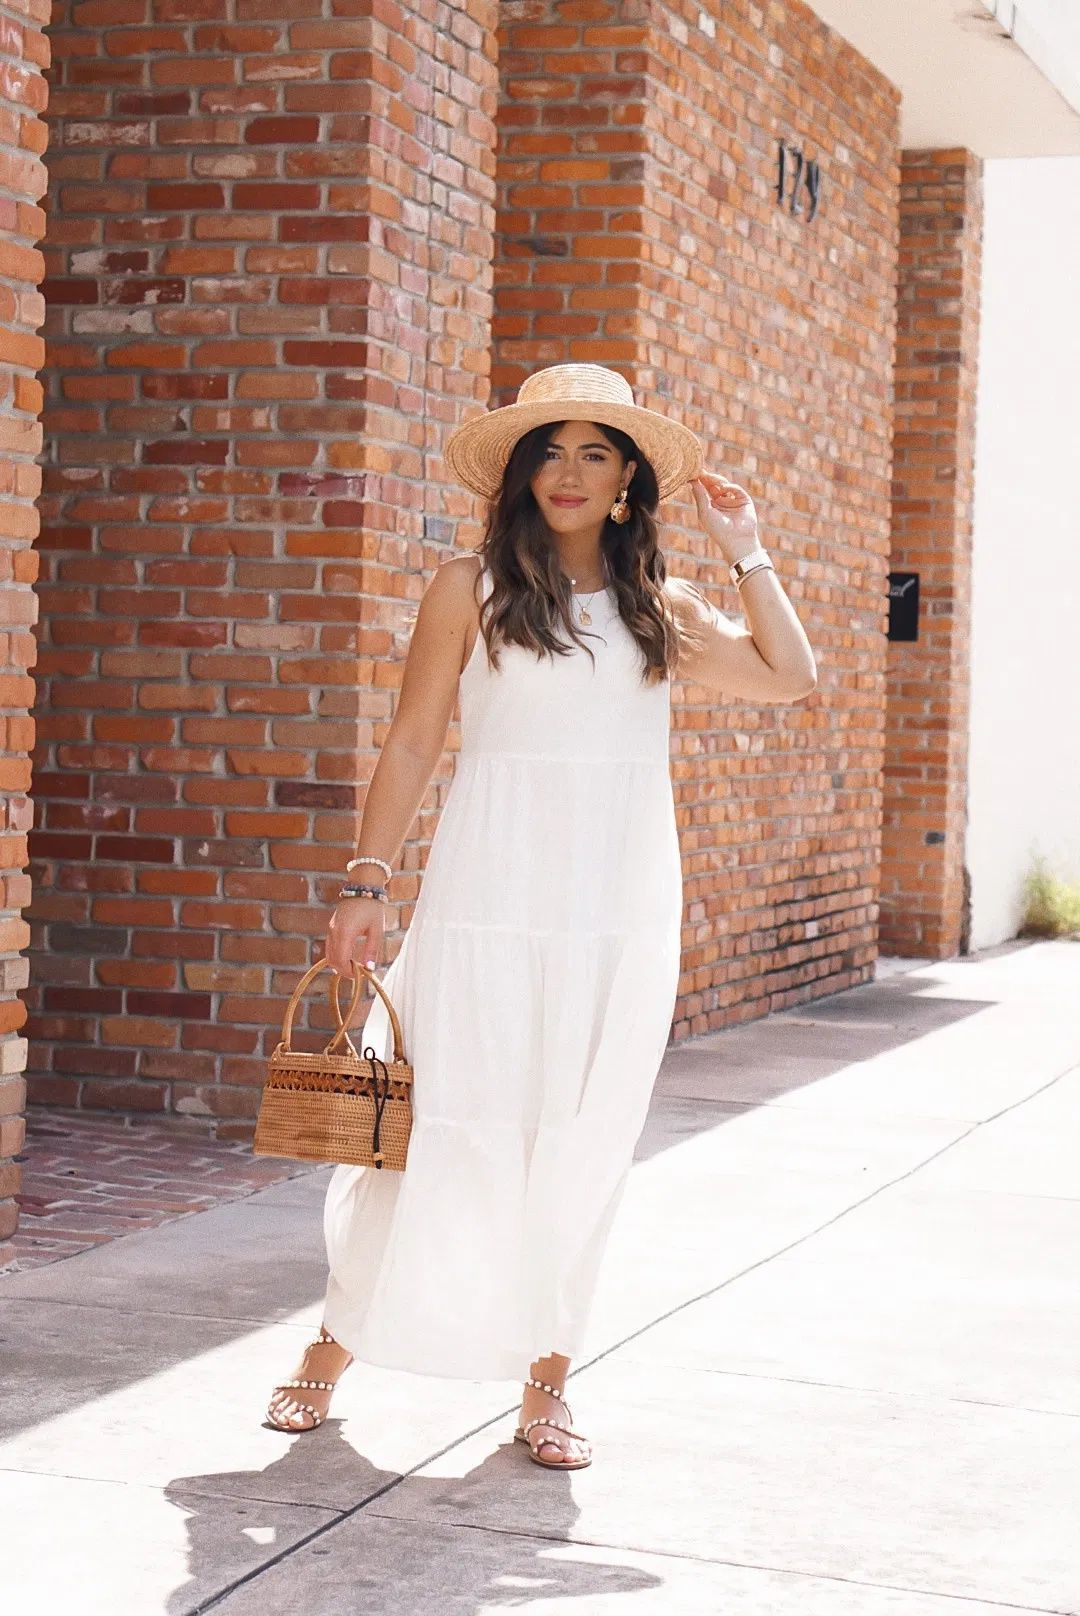 15 White Dresses Under 50 Sugar Love Chic White Maxi Dress Outfit Summer Dress Outfits Target Maxi Dresses [ 1616 x 1080 Pixel ]